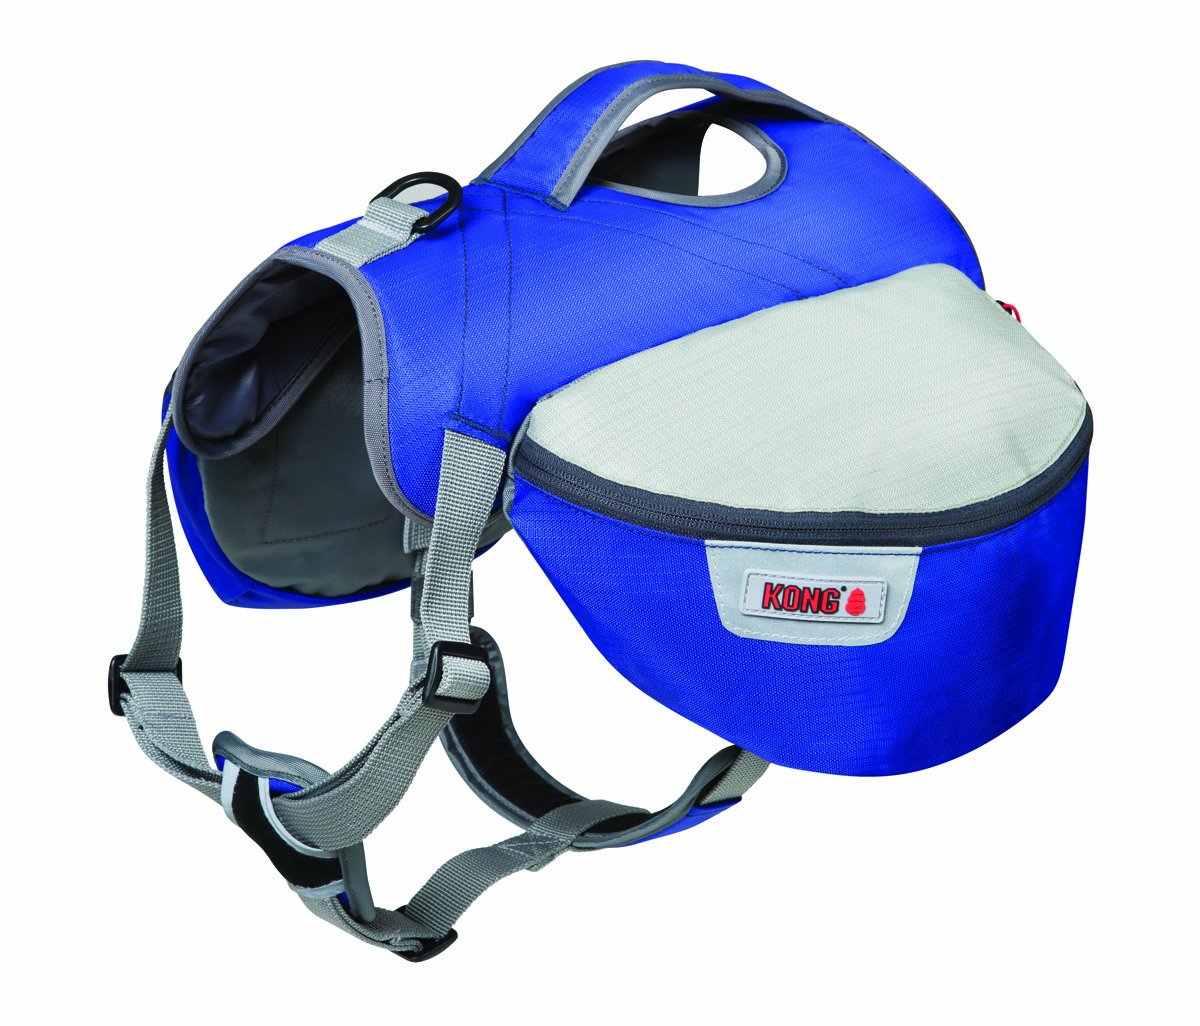 Future Sports Products International KONG SPORT Trek Travel Pack for Dogs, Medium, Blue/Silver 595741-844